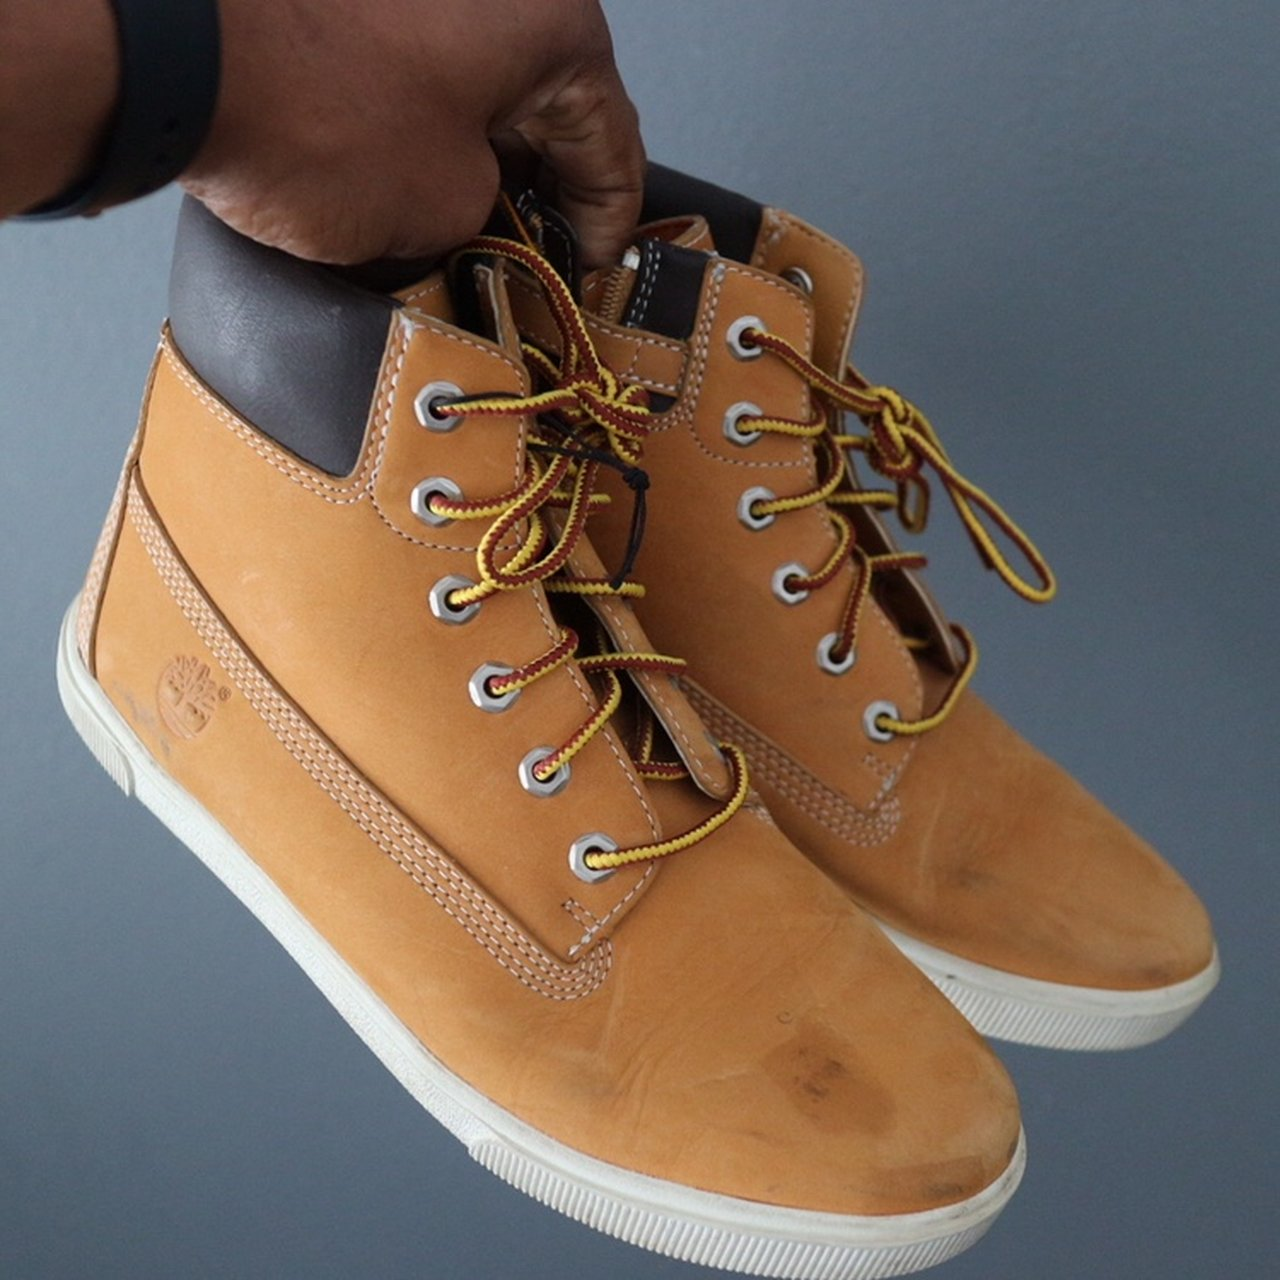 Timberland Boots Tan w/ White Sole Zip